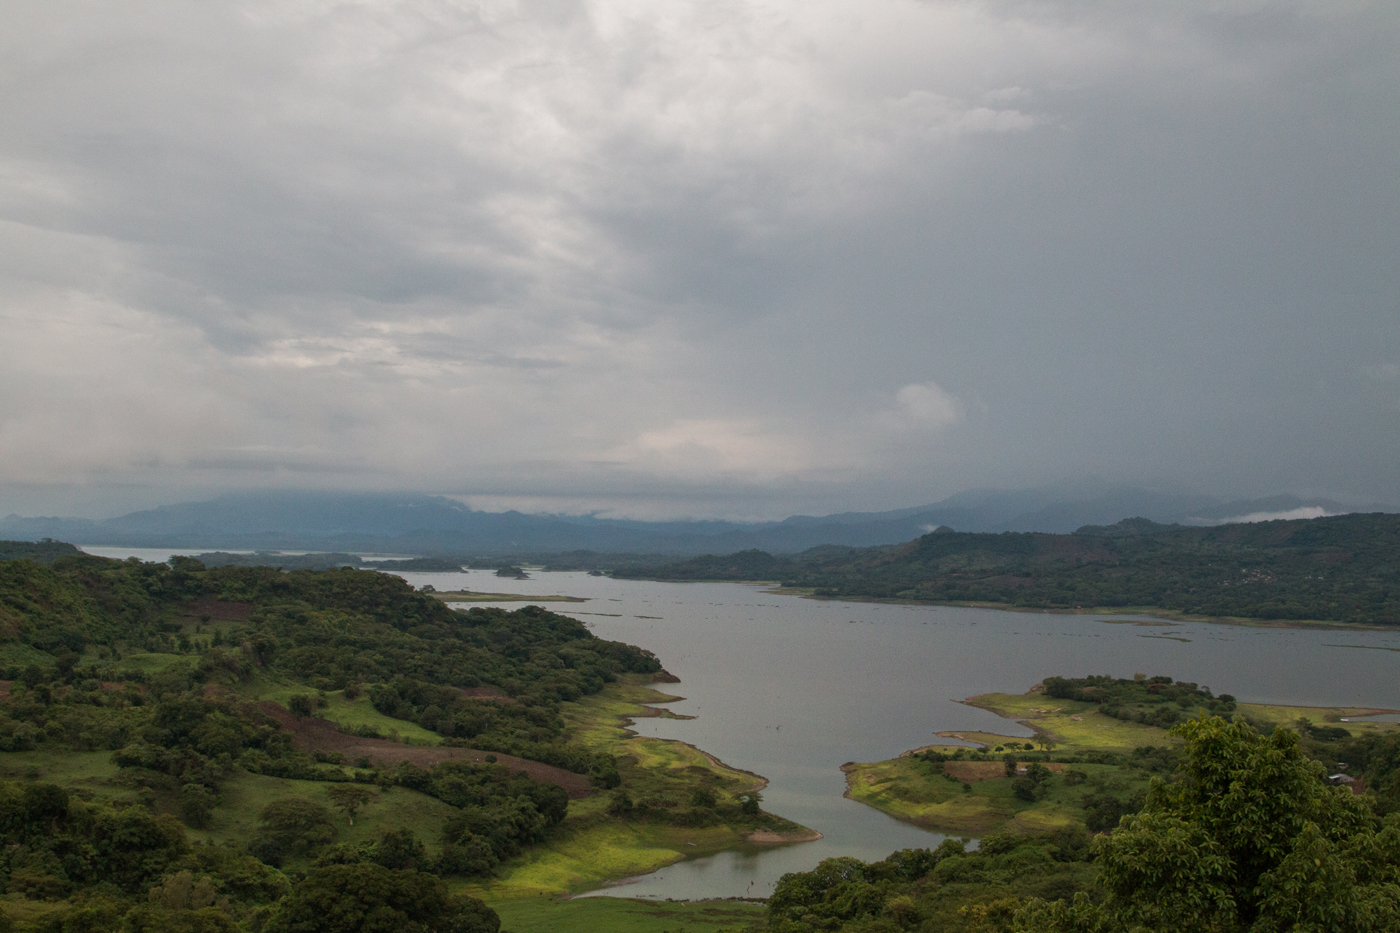 Suchitlán lake from our bedroom window